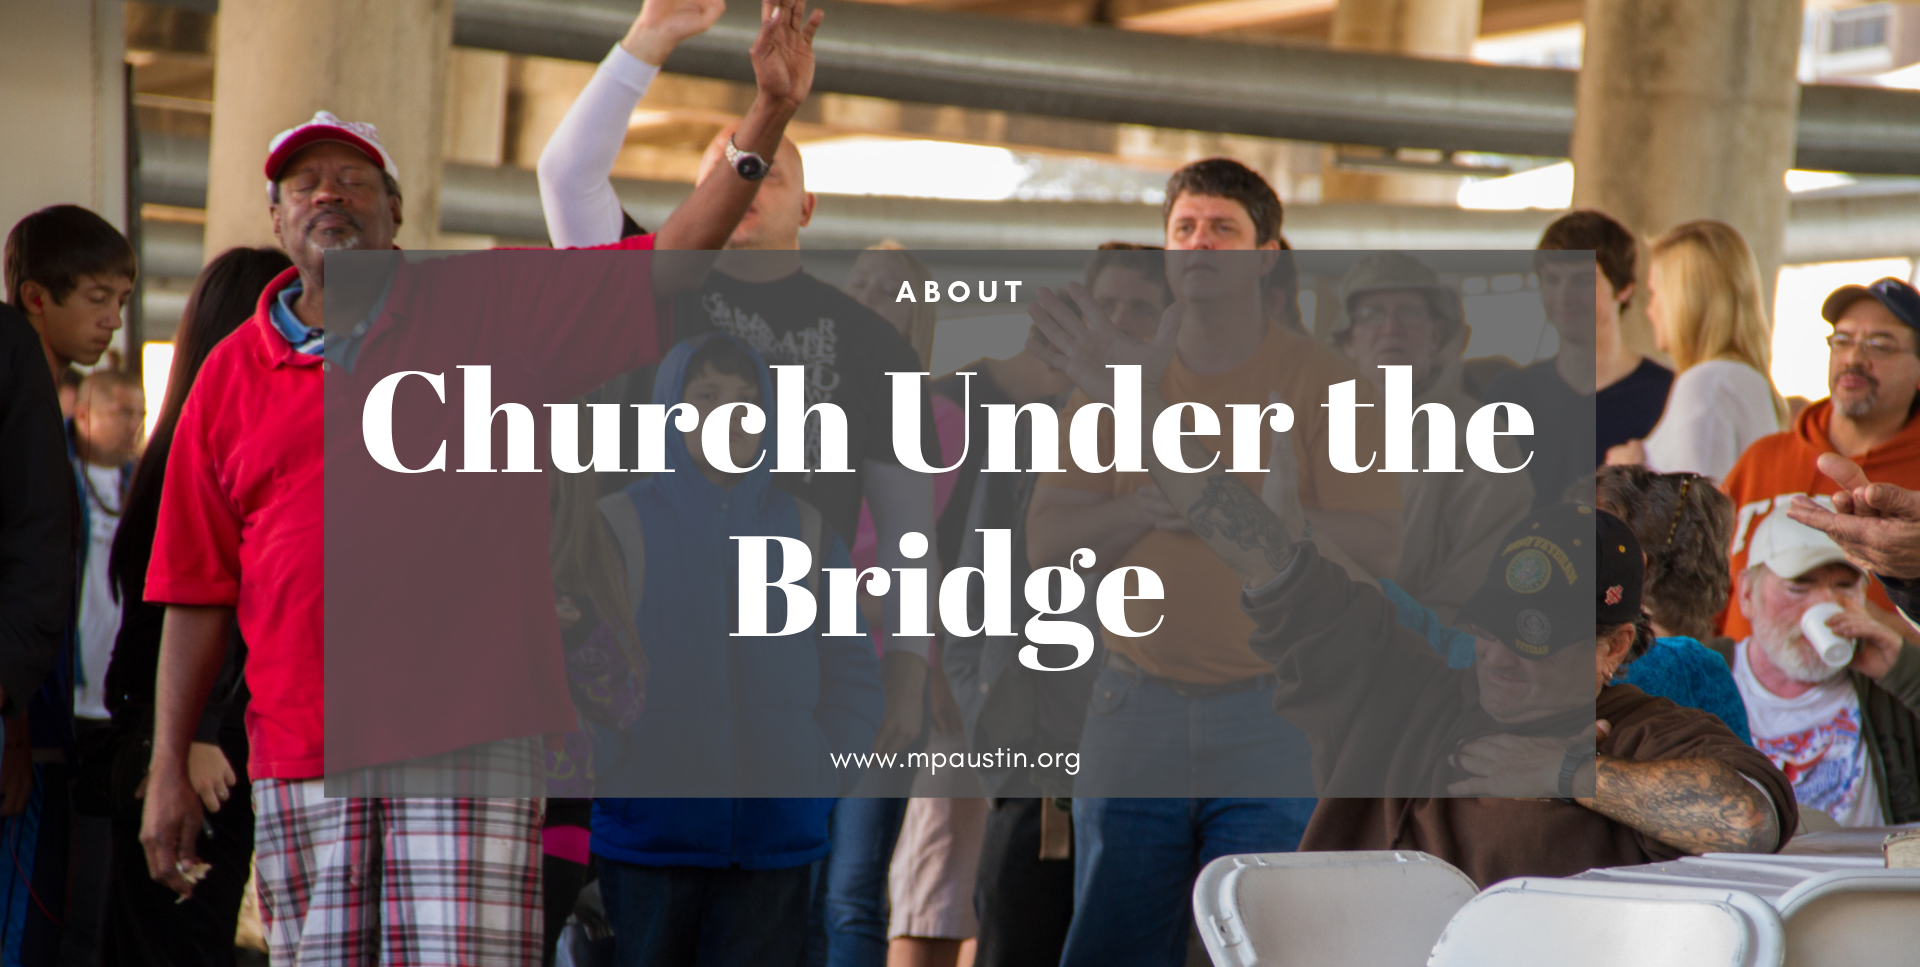 About Church Under the Bridge